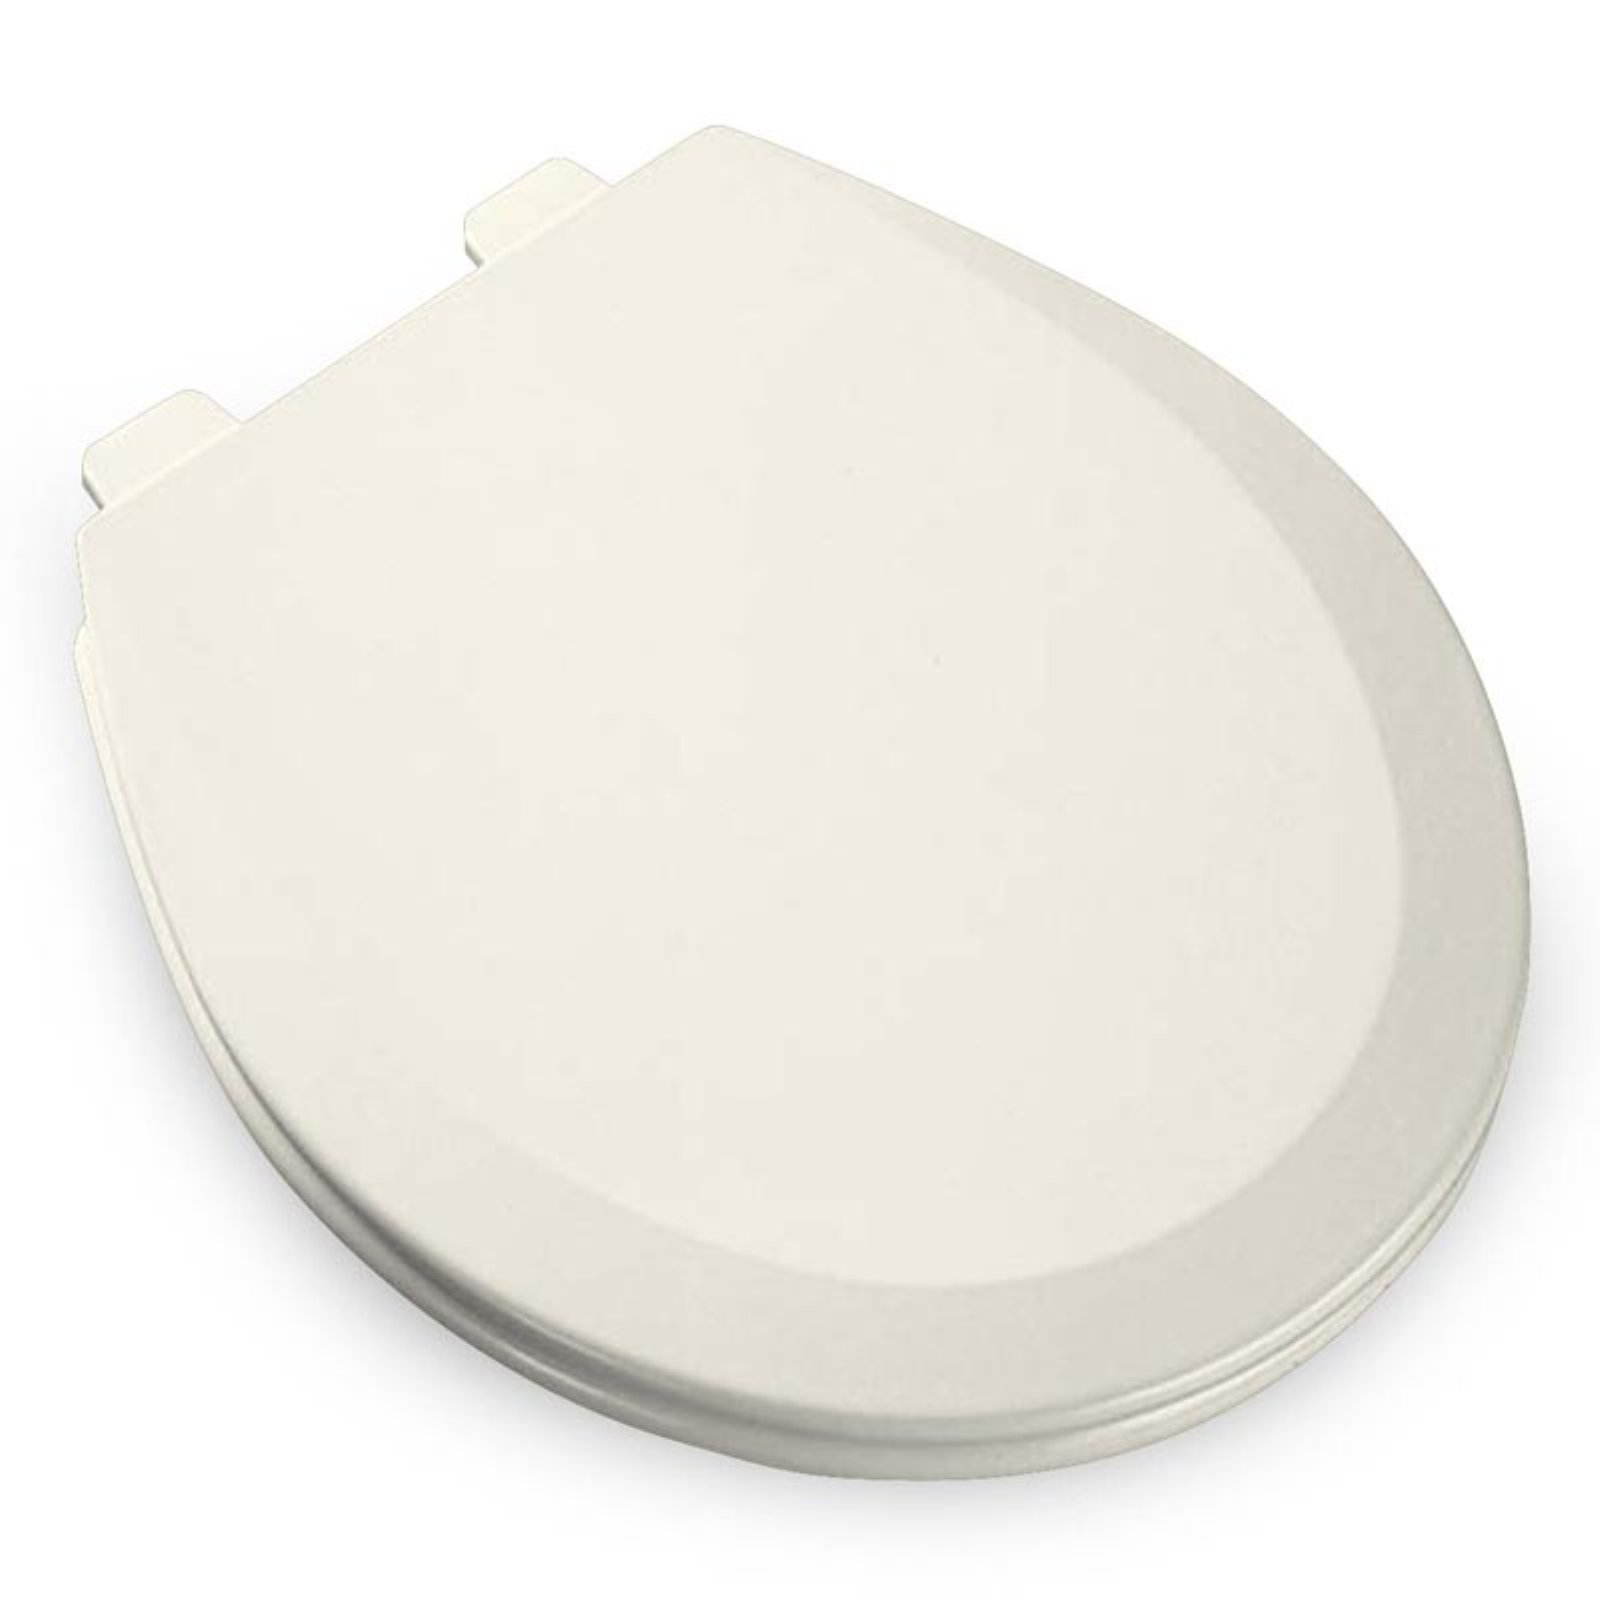 Bemis 500ec lift off wood round toilet seat available in various bemis 500ec lift off wood round toilet seat available in various colors walmart nvjuhfo Image collections